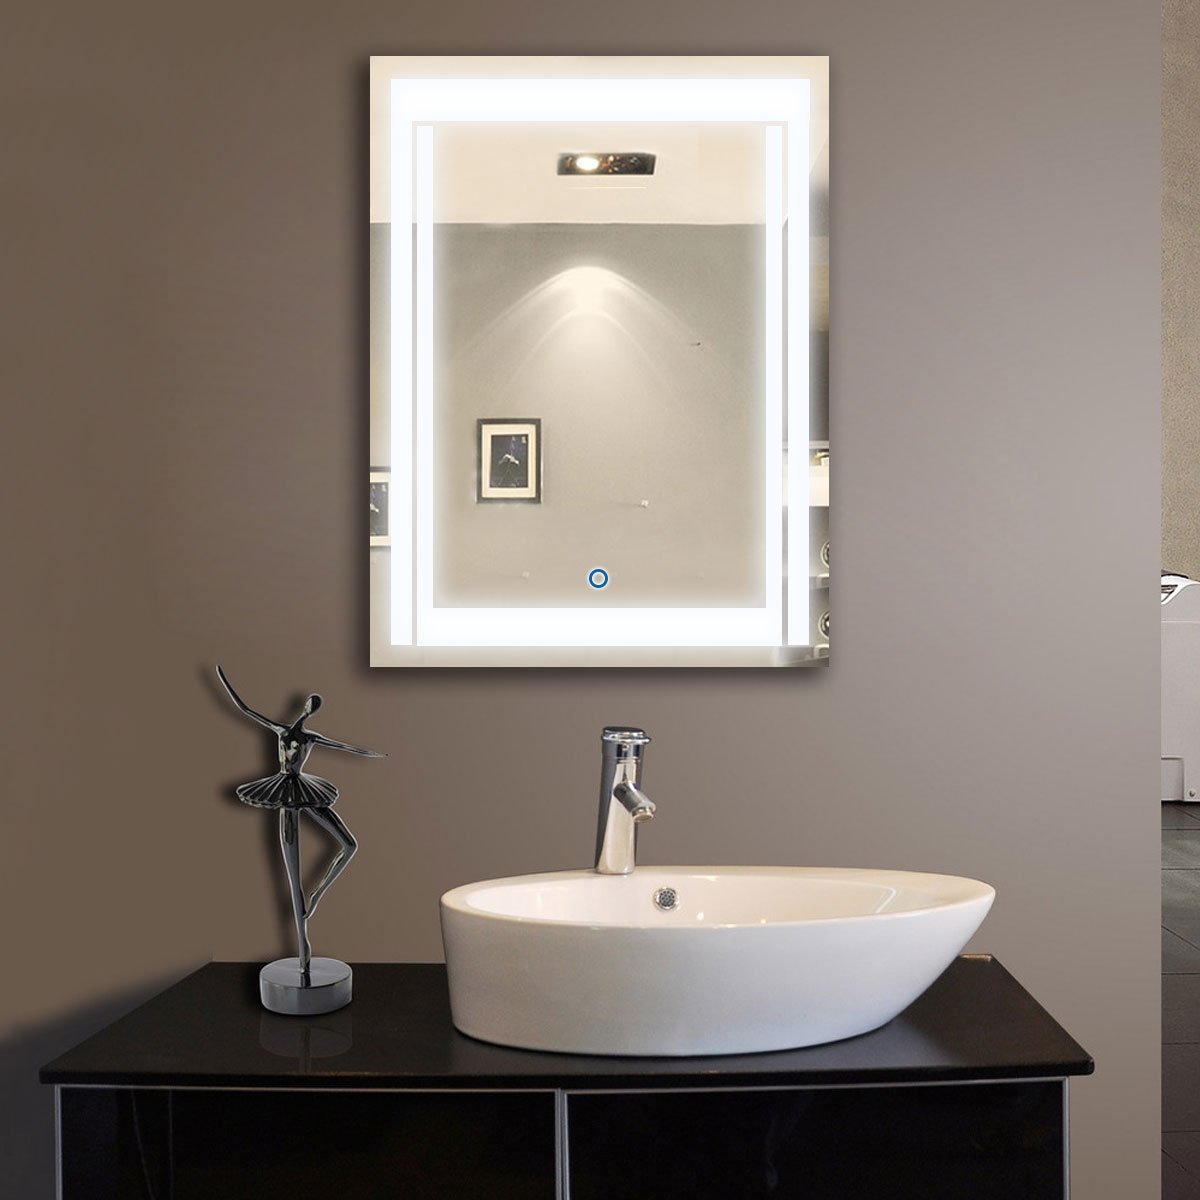 Amazon PartyWoo Vertical LED Lighted Vanity Bathroom Silvered Mirror Touch Button Make Up Wall Mounted 24 Inch X 32